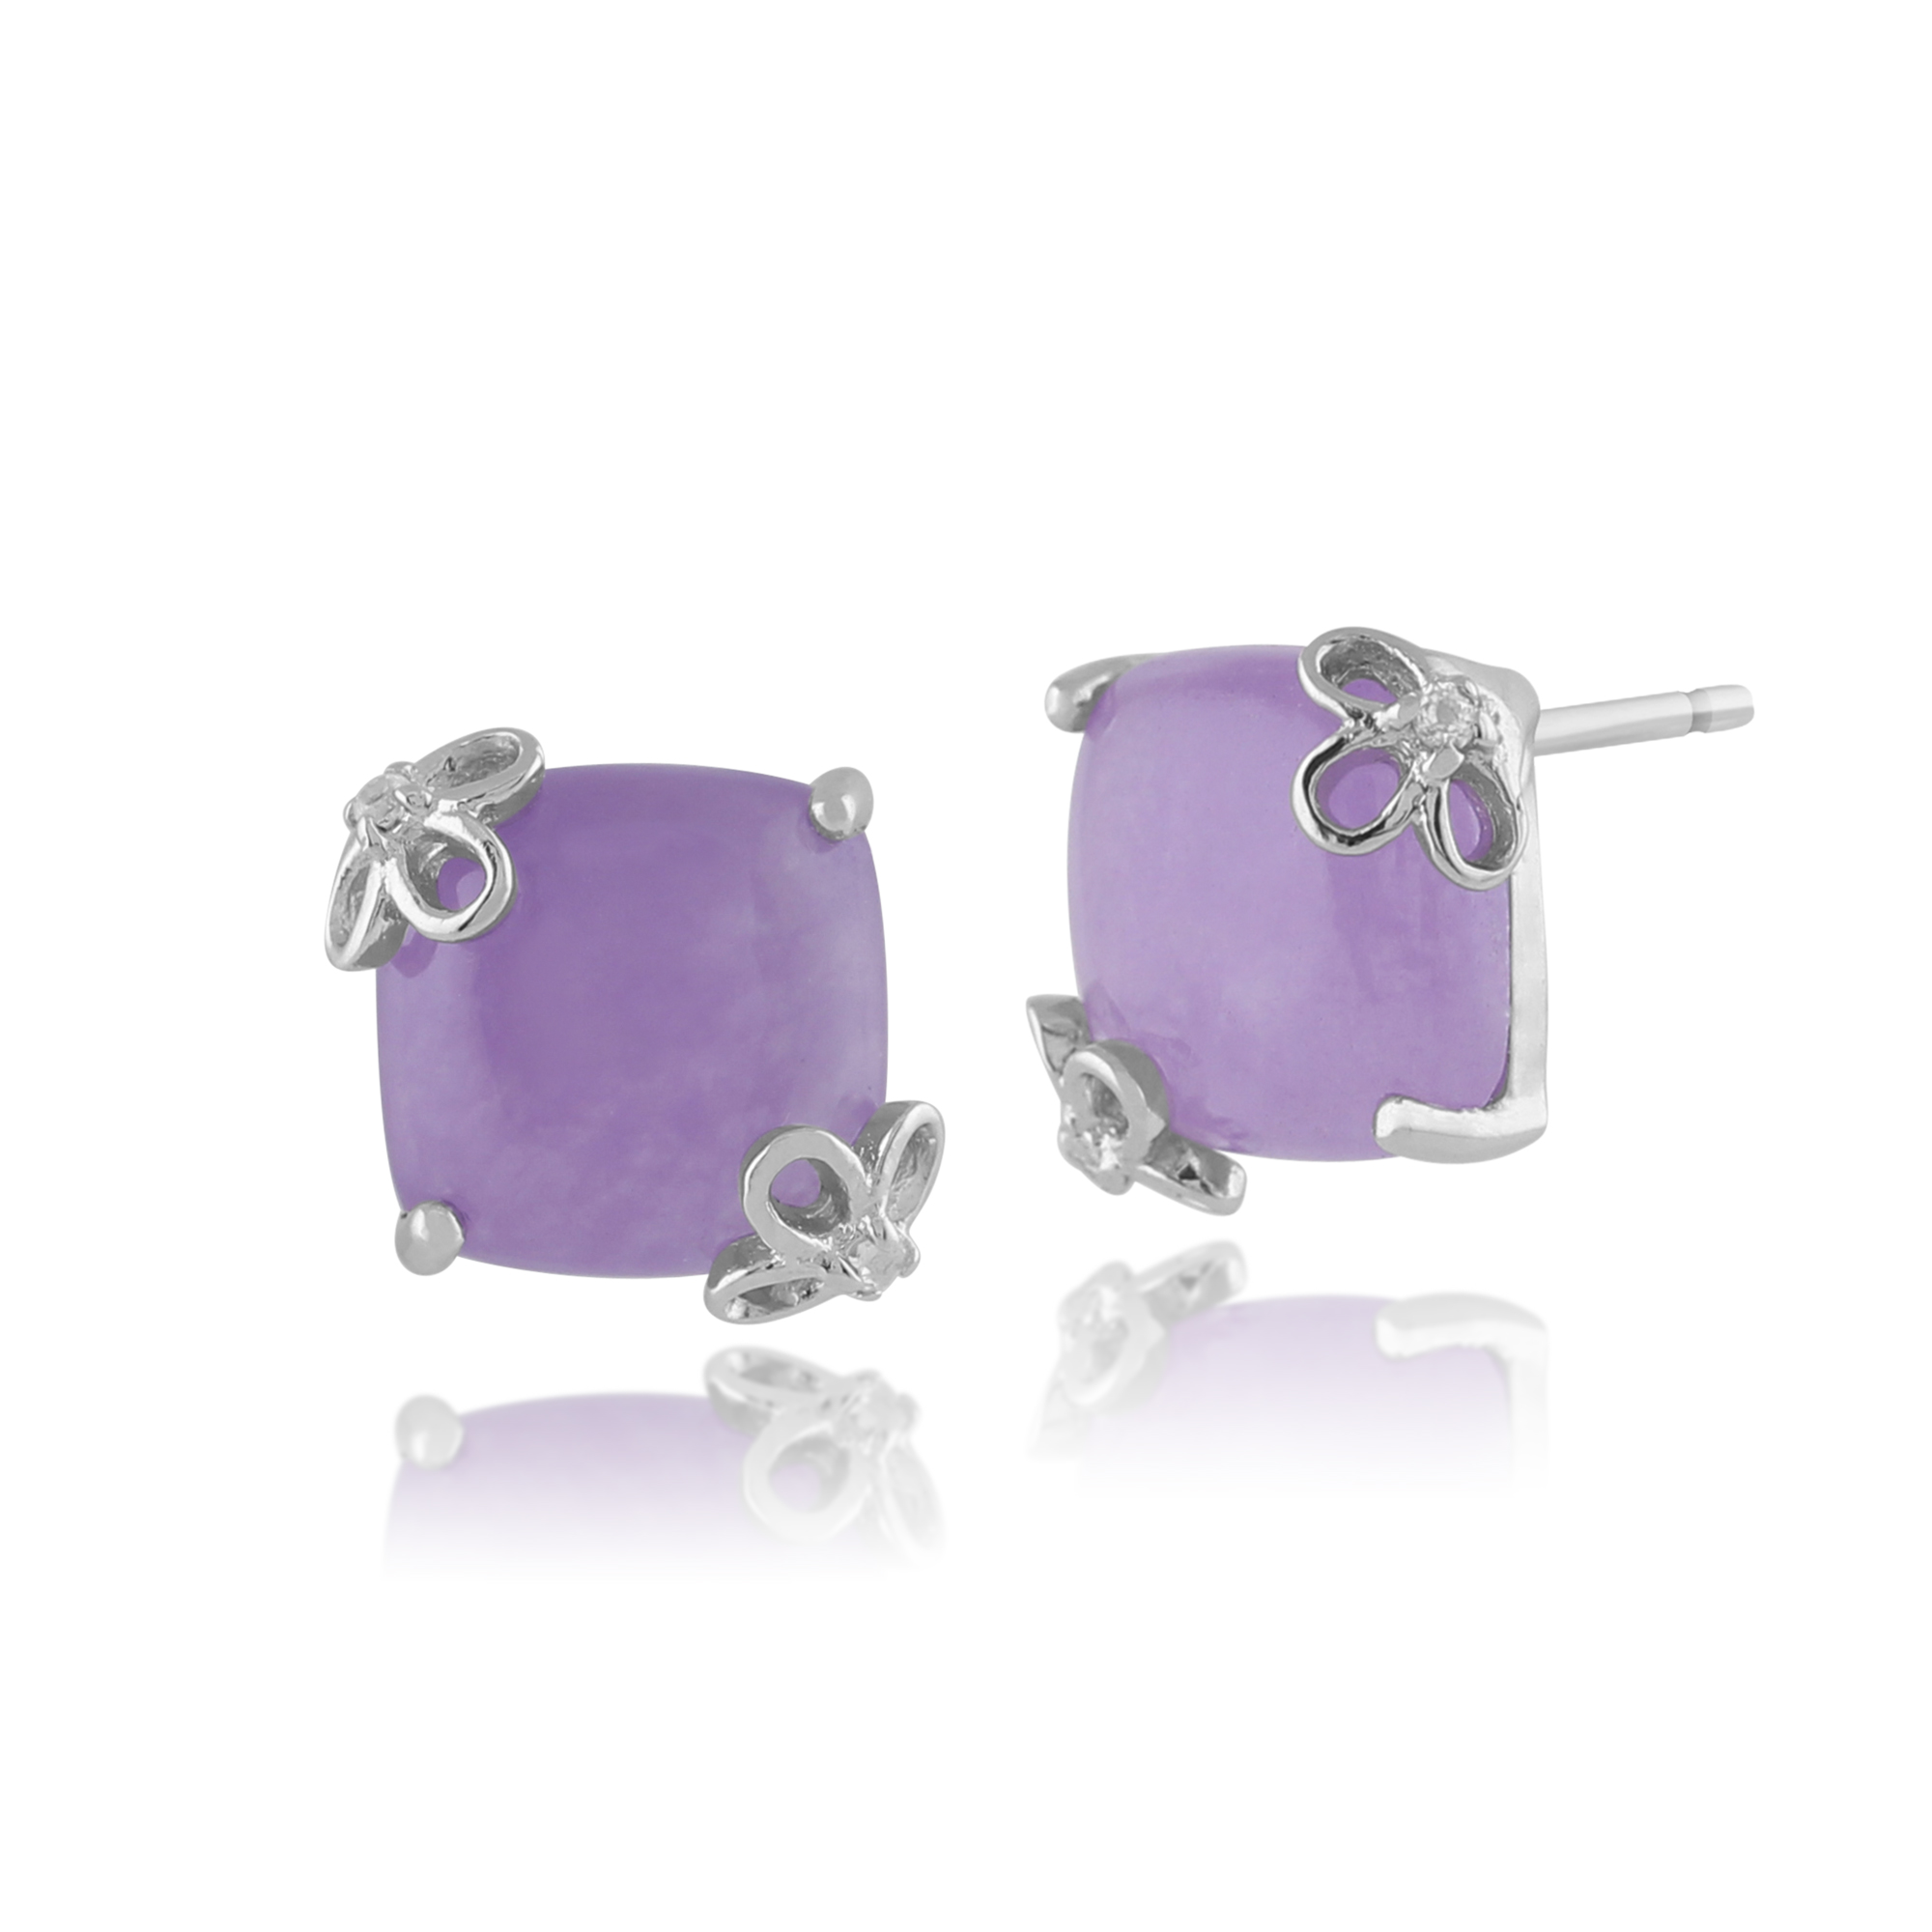 Gemondo 925 Sterling Silver 5ct Lavendar Jade & White Topaz Square Stud Earrings